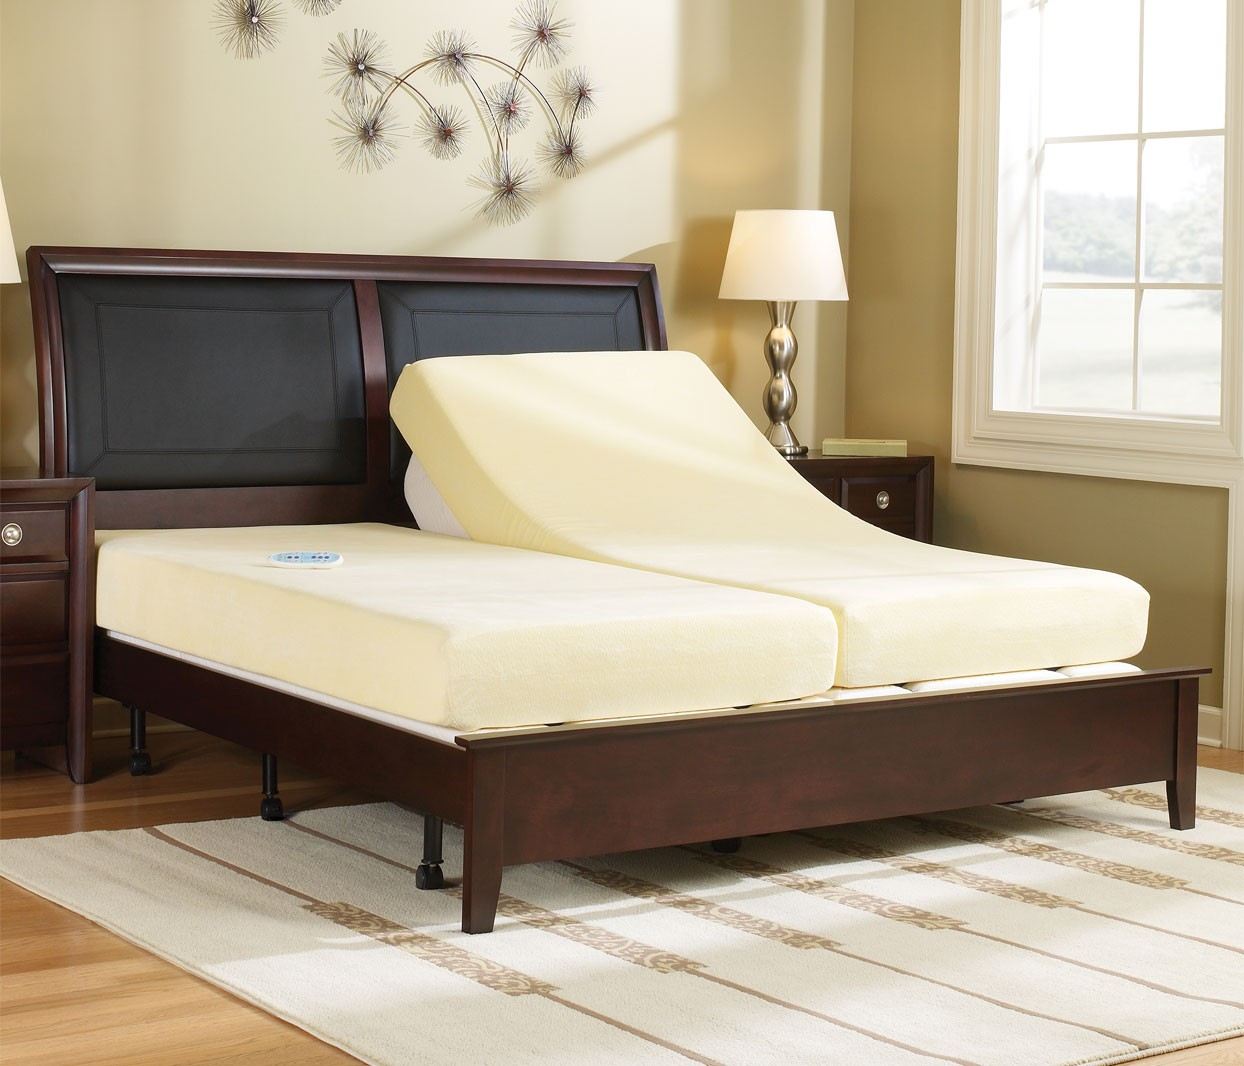 Sleep number adjustable beds amerisleep adjustable bed for Sleep by number mattress